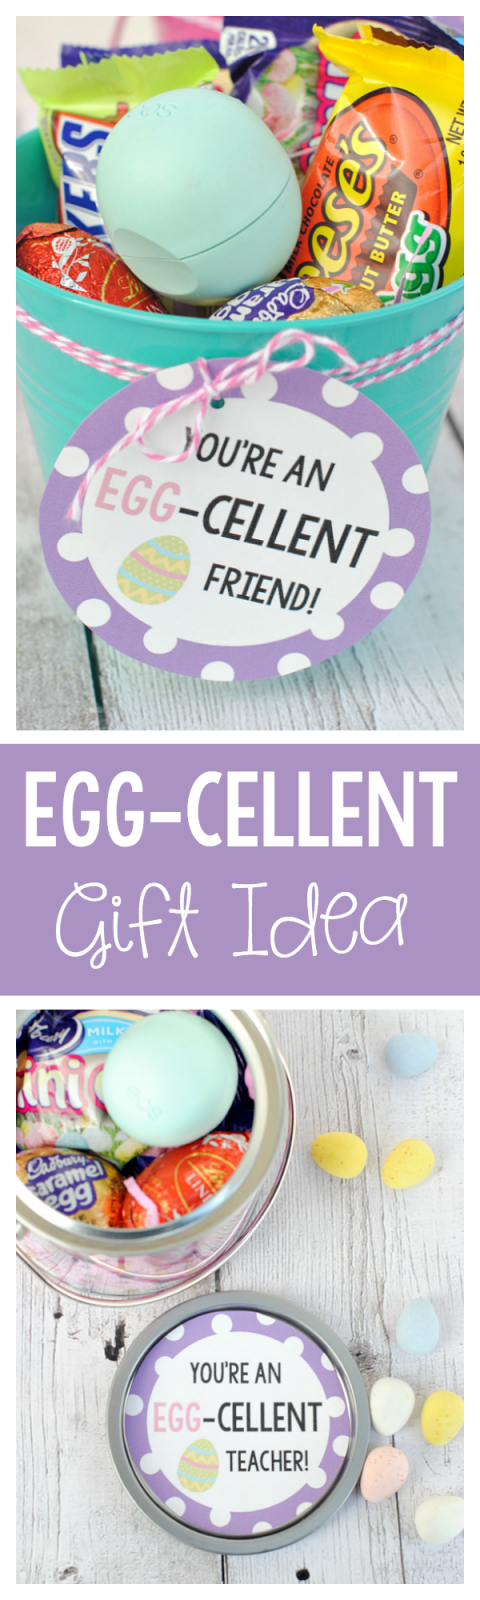 Cute easter gift ideas egg cellent gift basket easter gift and what a cute gift idea for a friend at easter negle Choice Image